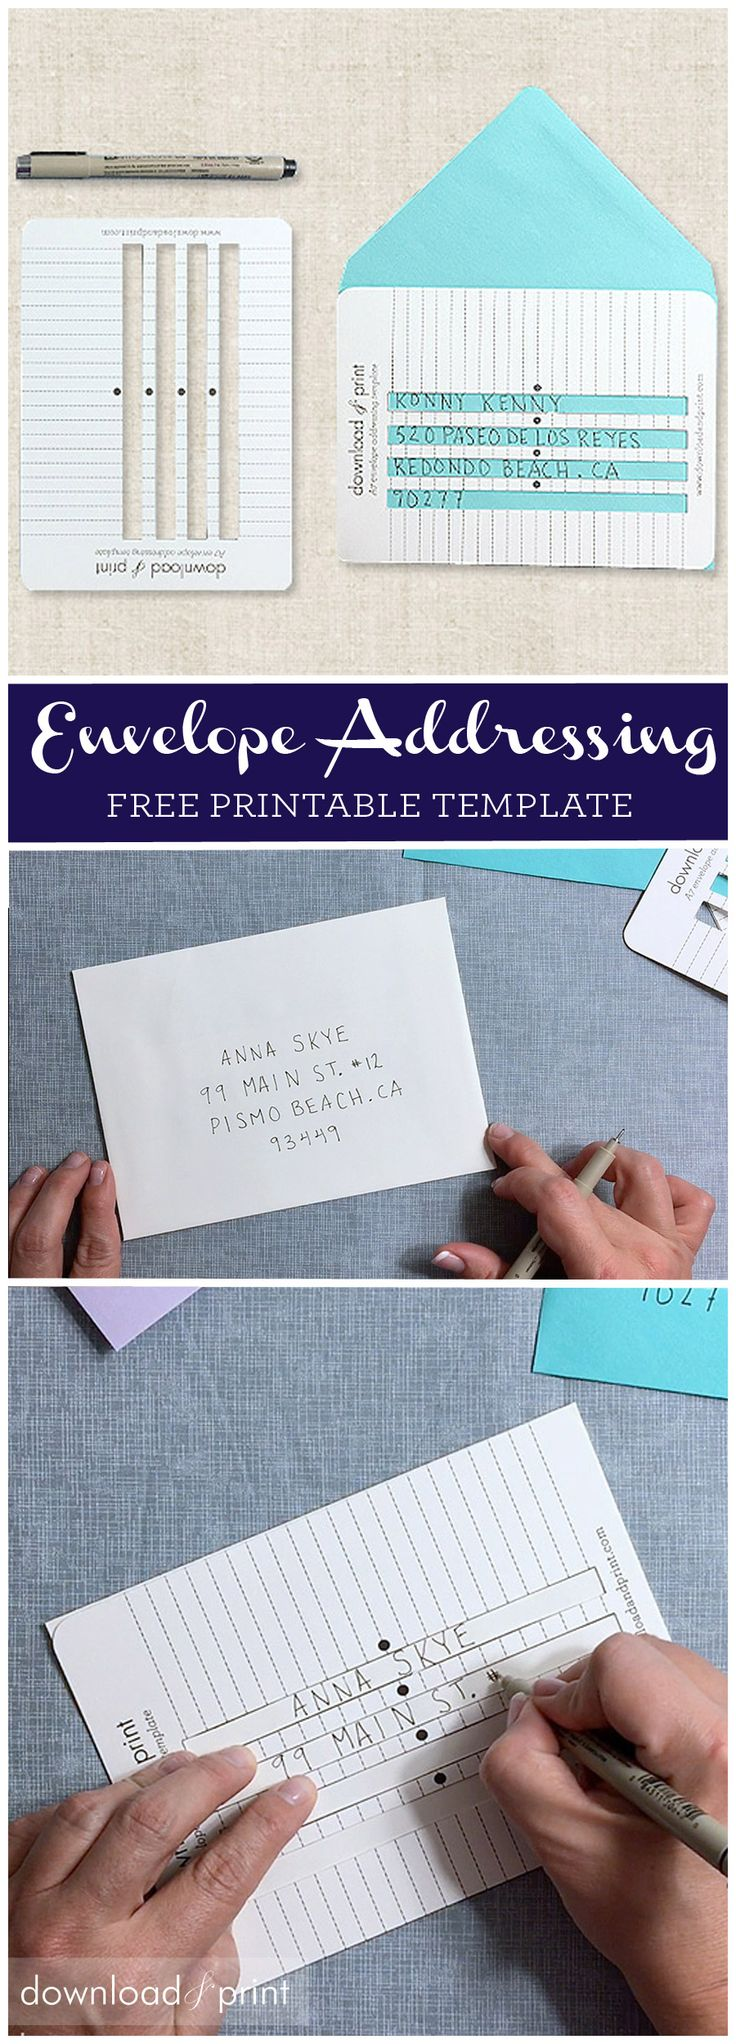 Use this free template when handwriting envelopes